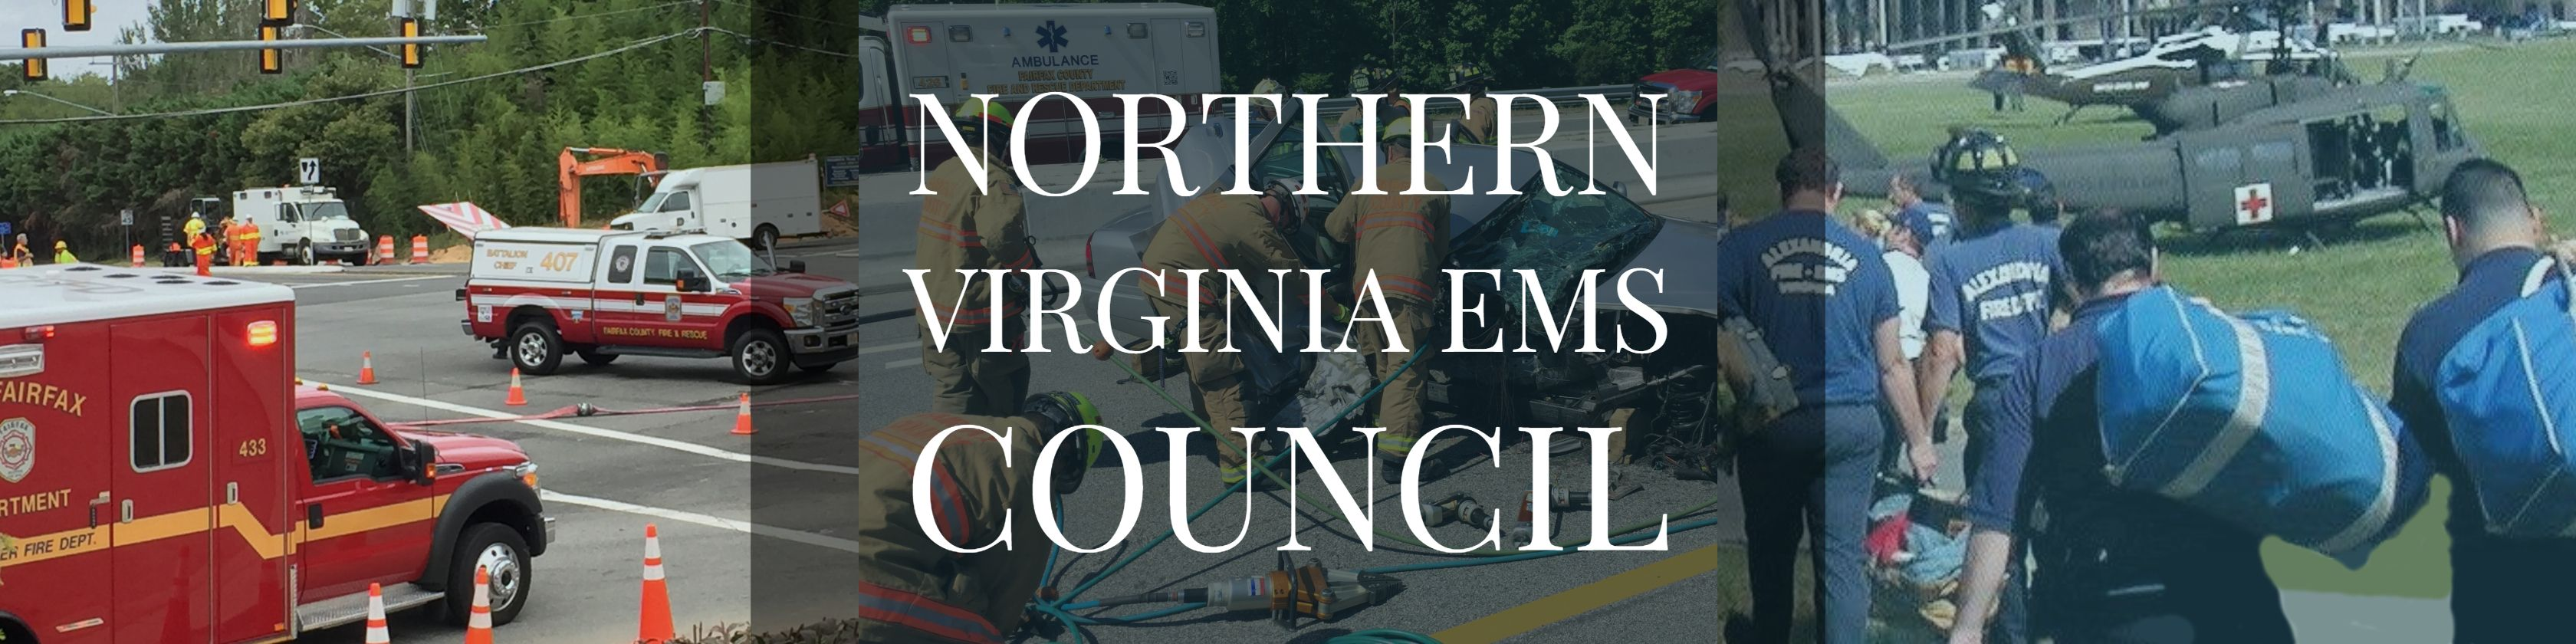 Northern Virginia EMS Council